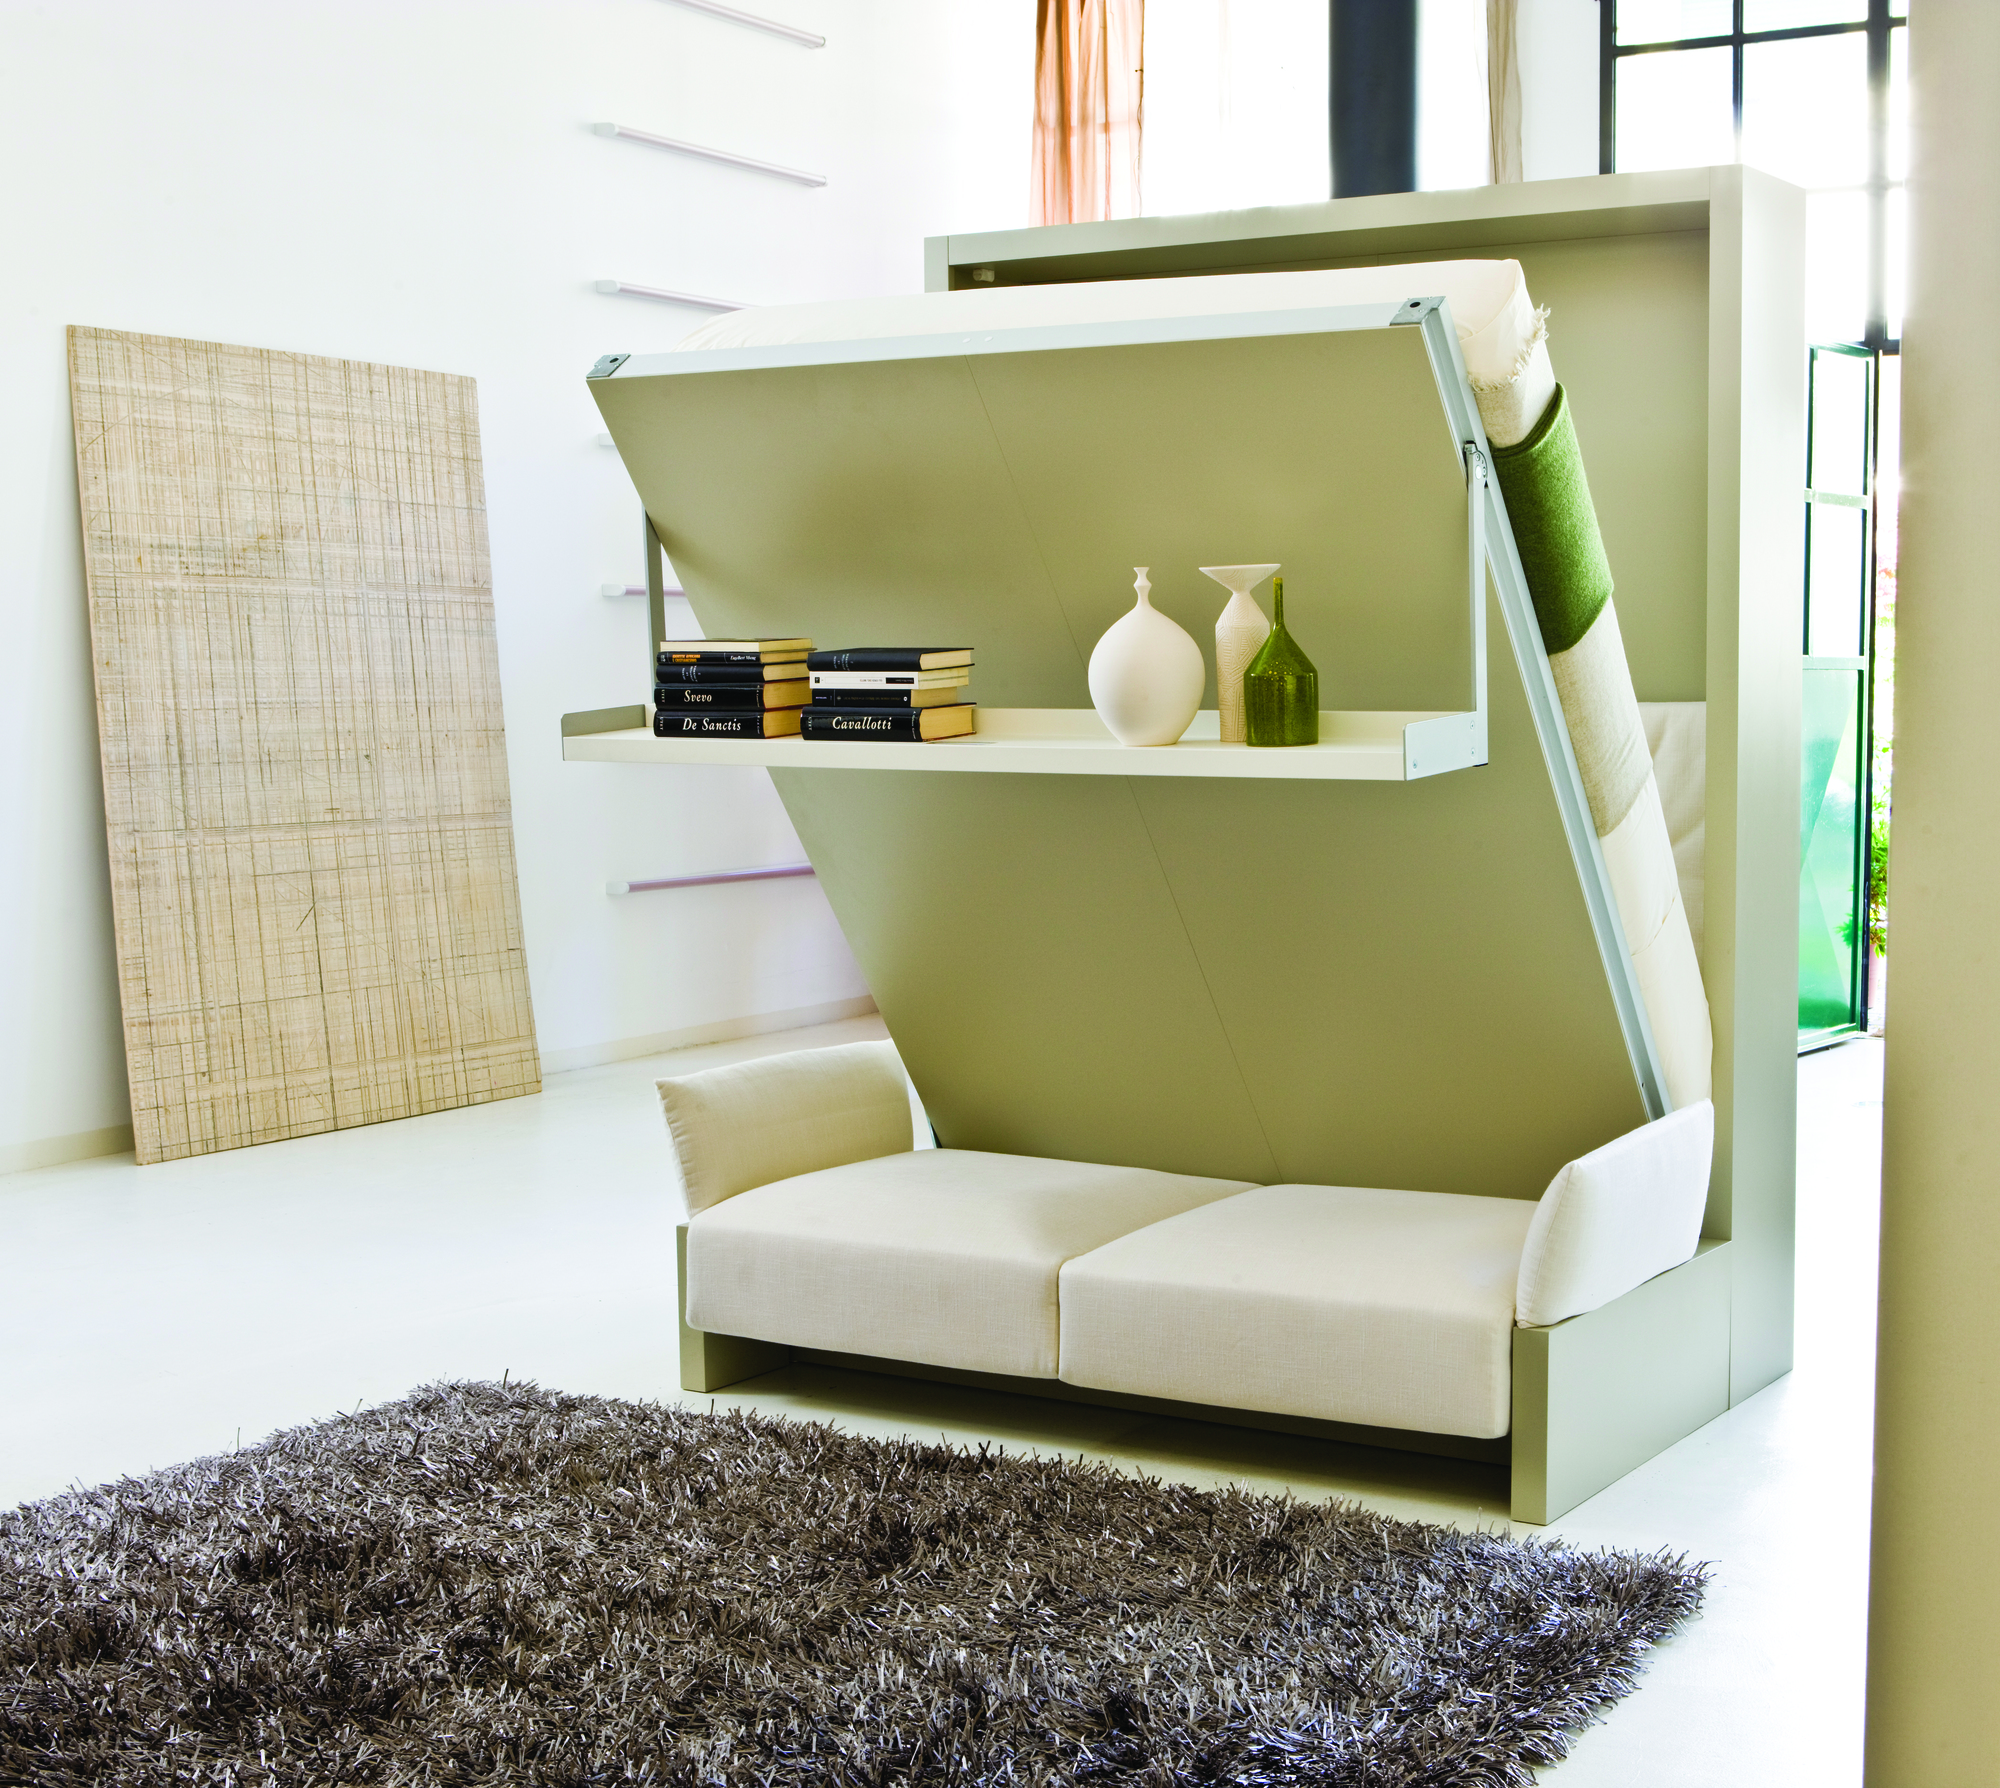 Gallery Of Micro-Apartments: Are Expanding Tables And